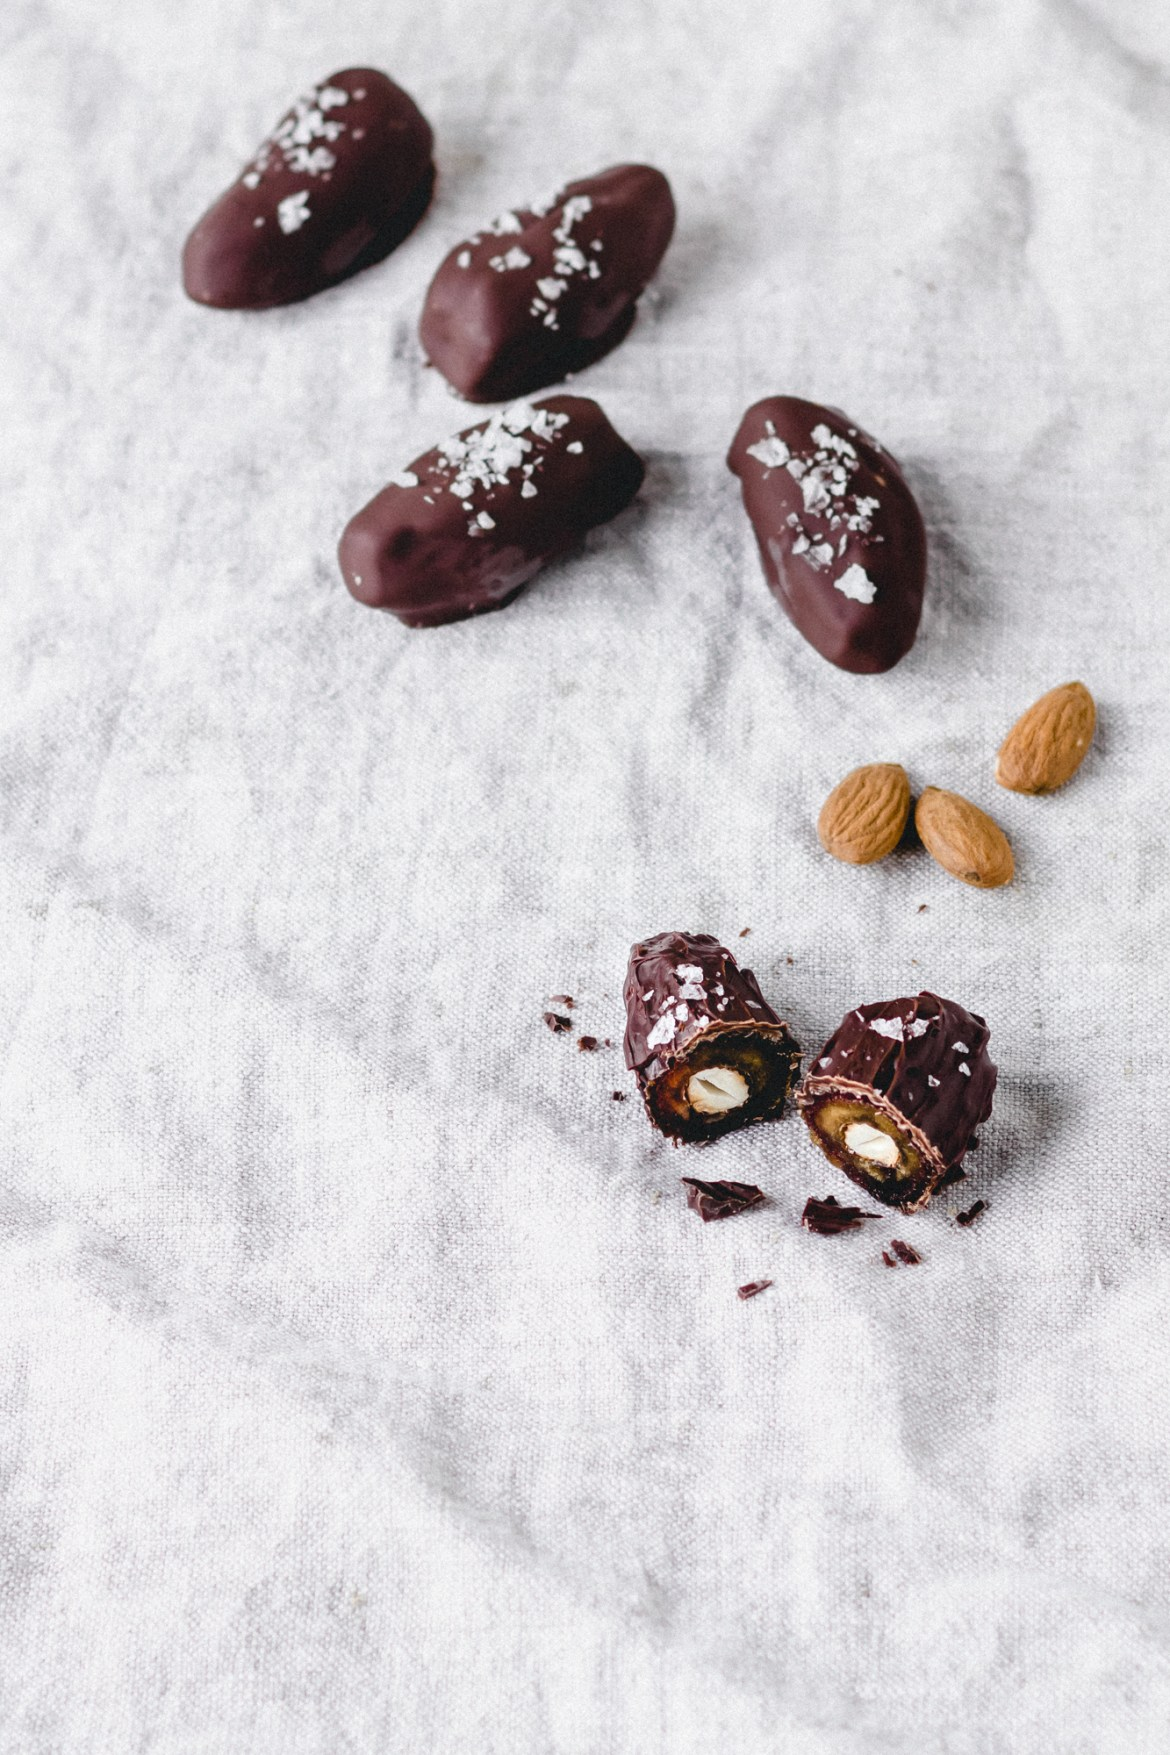 Vegan Salted Dark Chocolate Dates Stuffed With Almonds